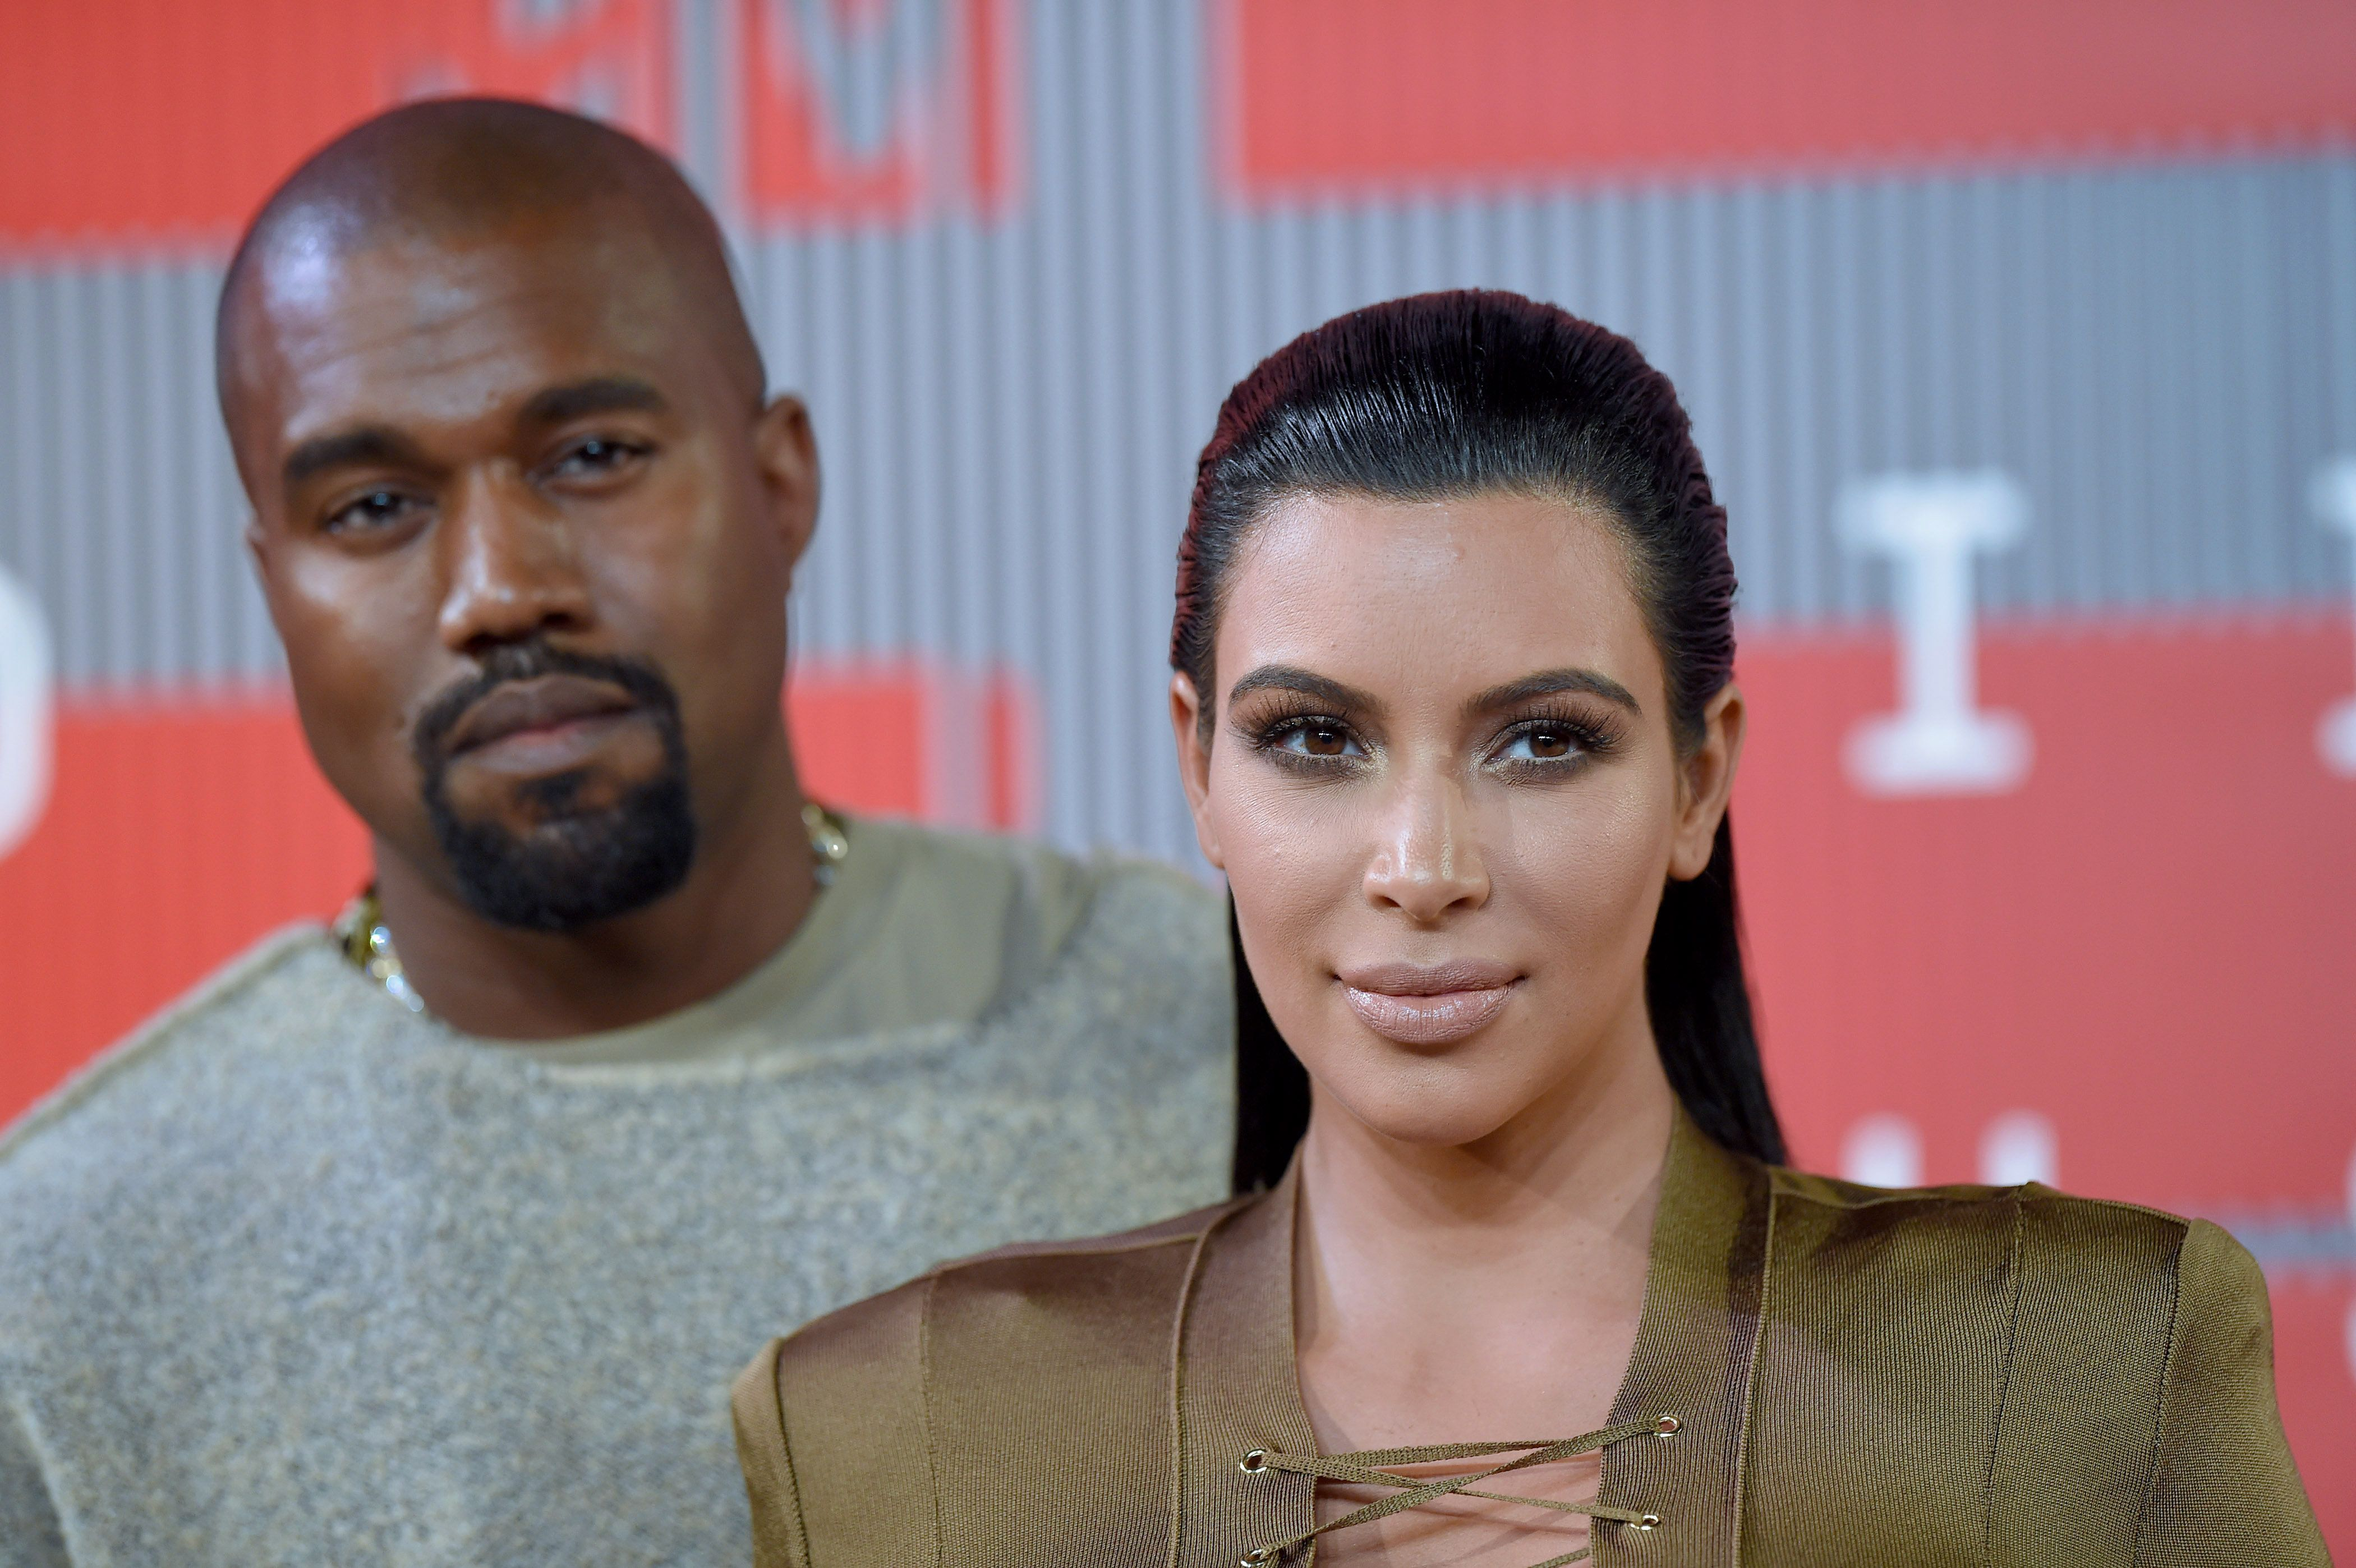 LOS ANGELES, CA - AUGUST 30:  TV personality Kim Kardashian and recording artist Kanye West arrive at the 2015 MTV Video Music Awards at Microsoft Theater on August 30, 2015 in Los Angeles, California.  (Photo by Axelle/Bauer-Griffin/FilmMagic)